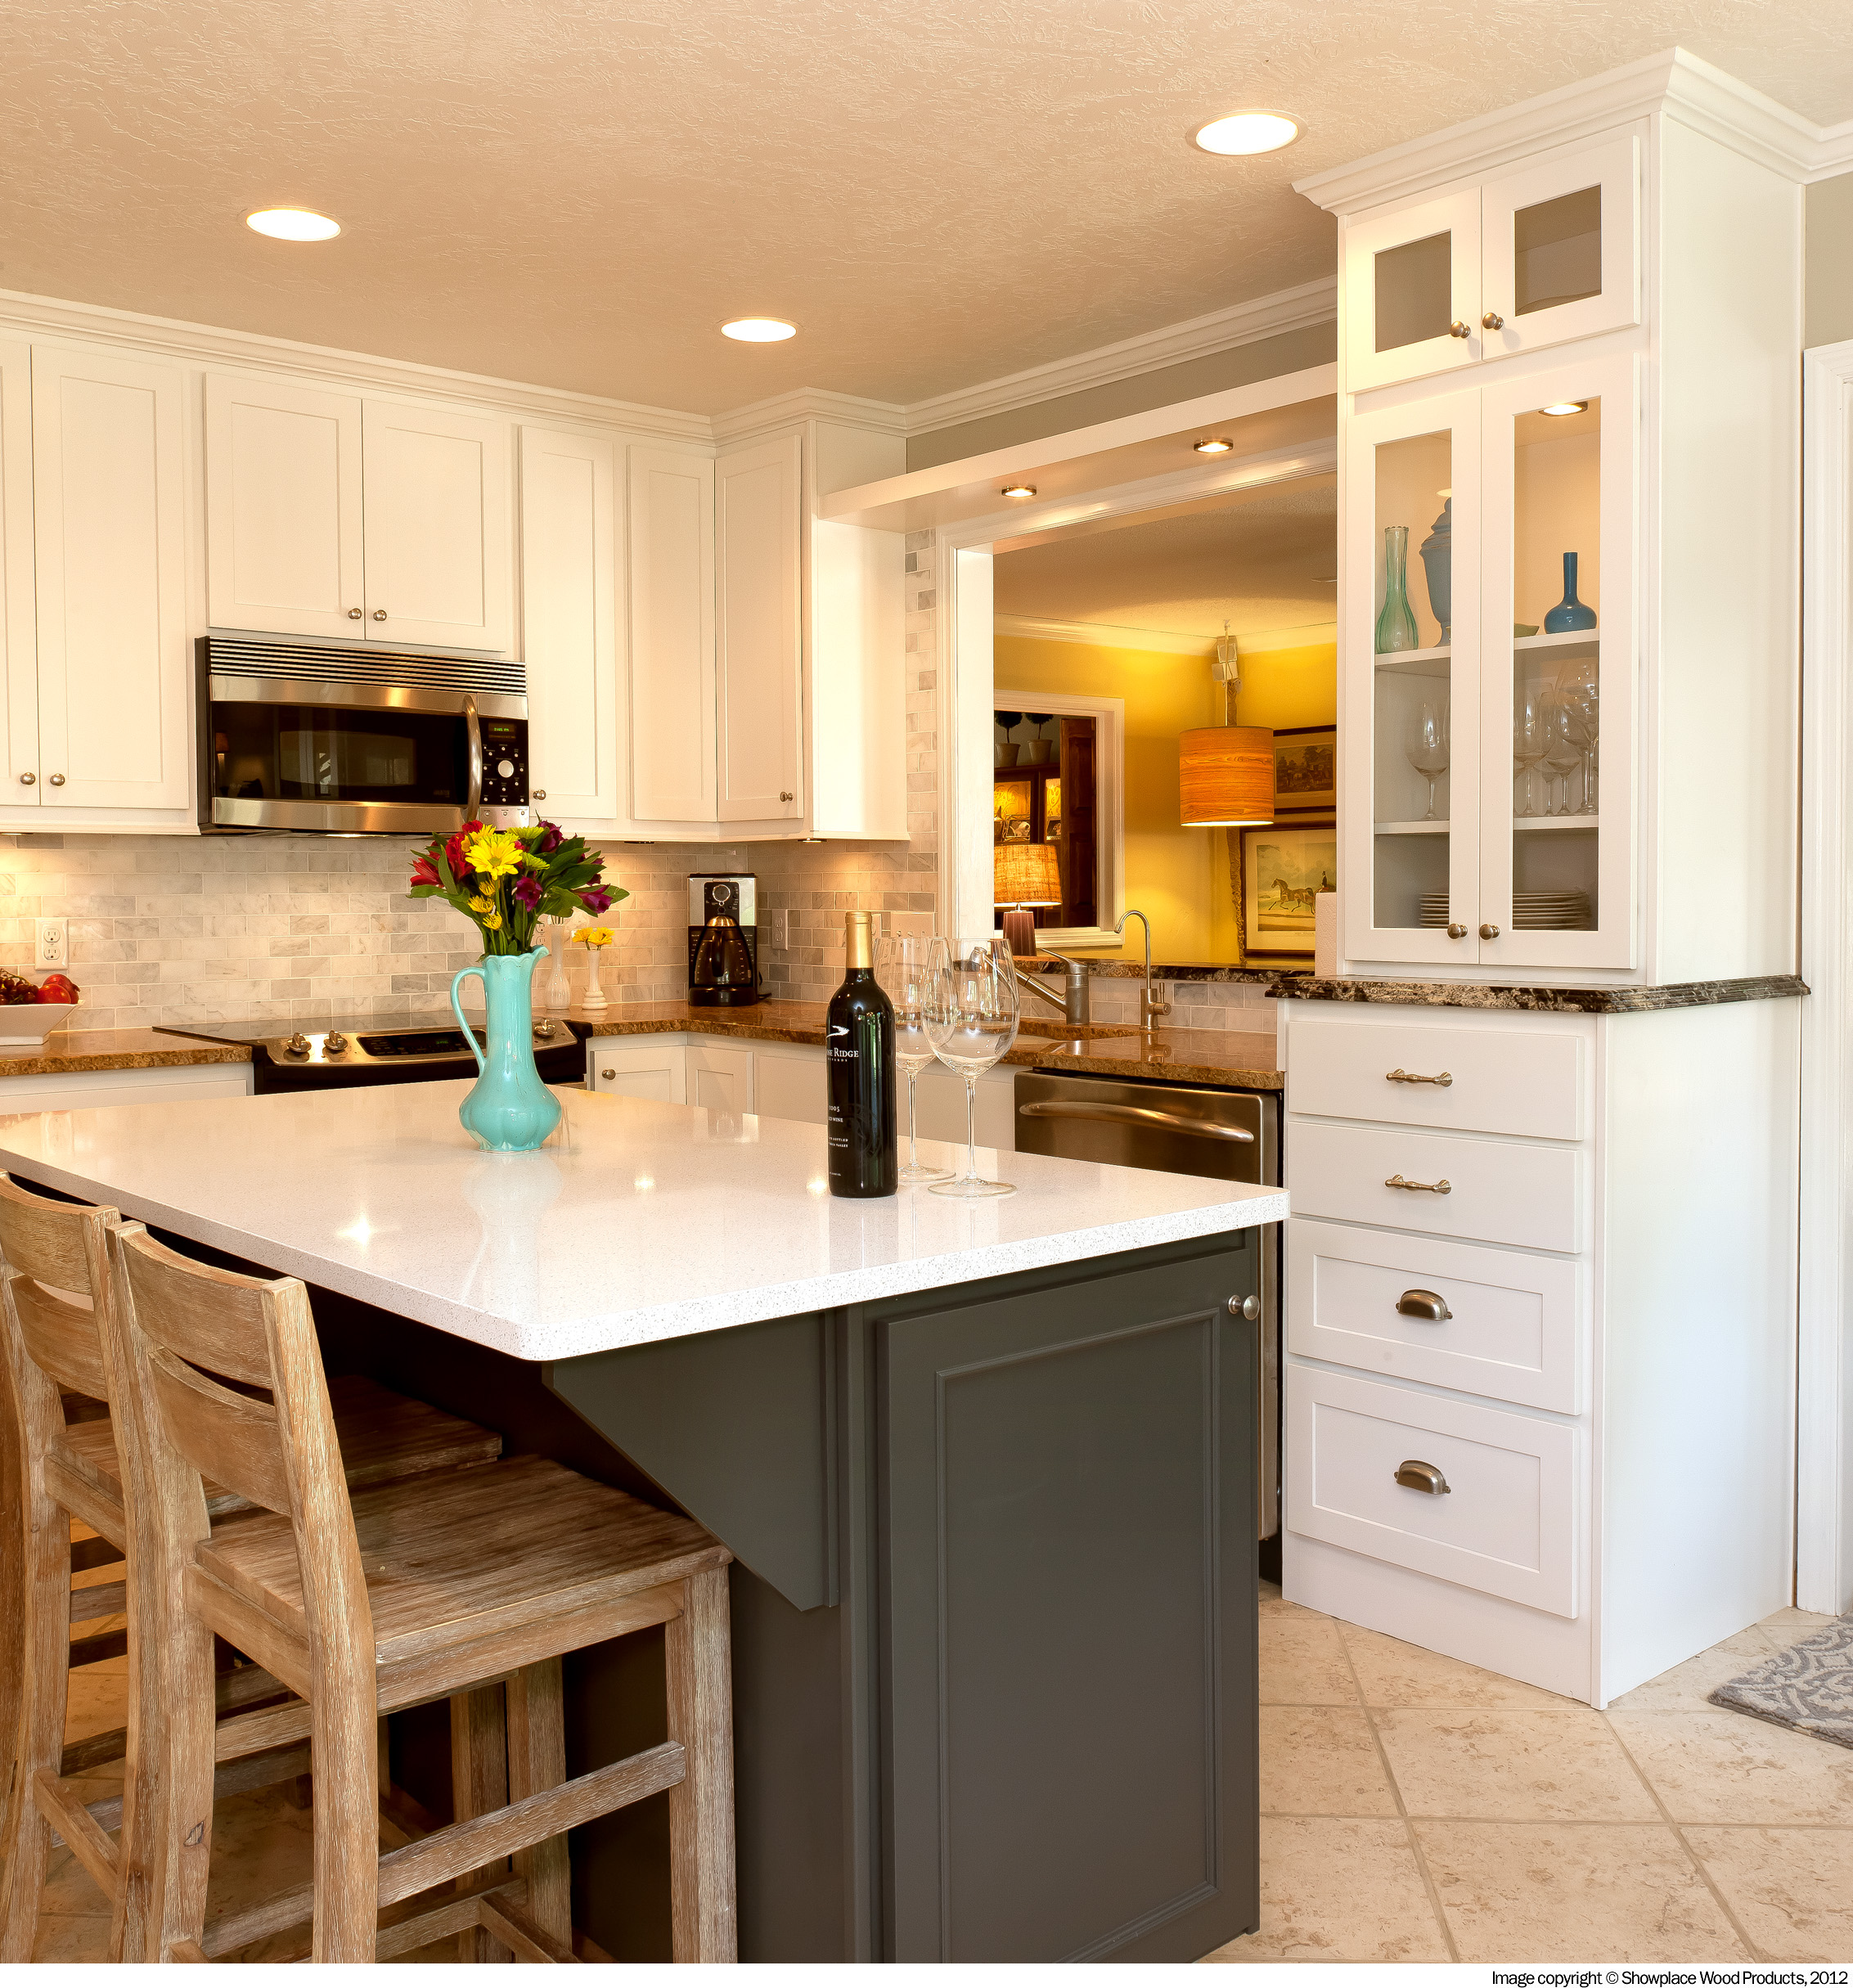 Discount Kitchen Cabinets Peoria Il